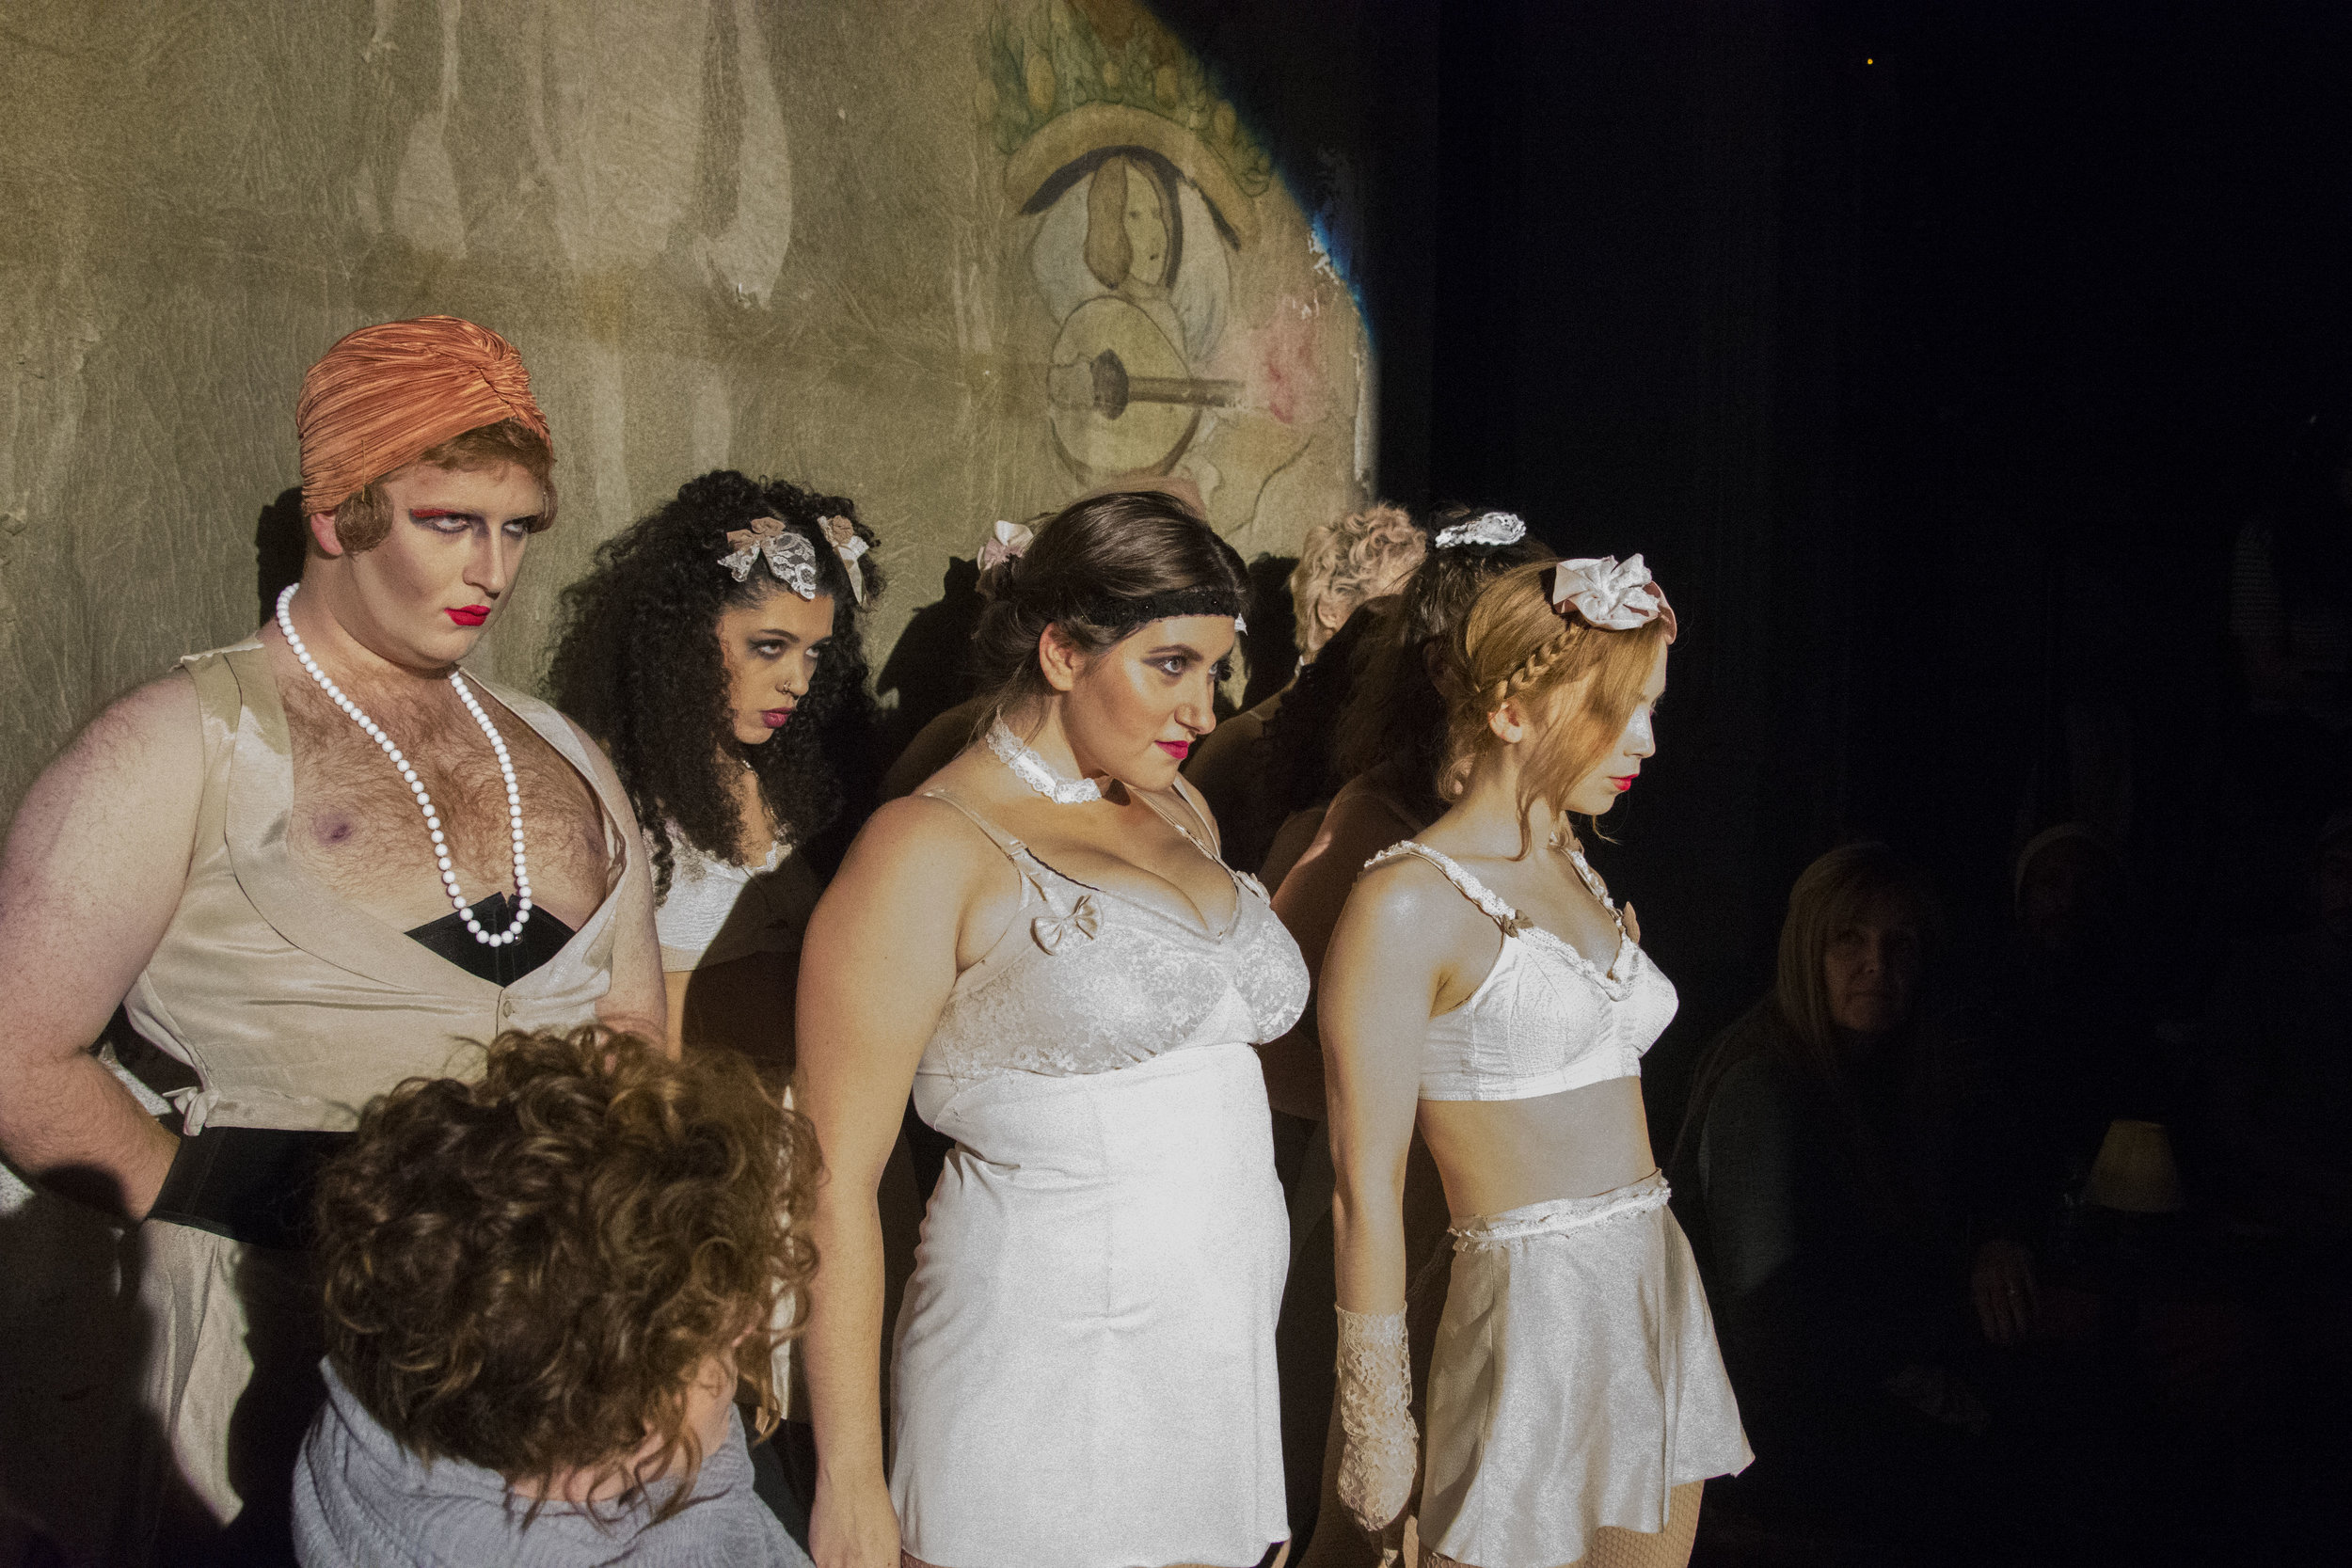 Cabaret, directed by McCaela Donavan. Photo by Kalman Zabarsky.